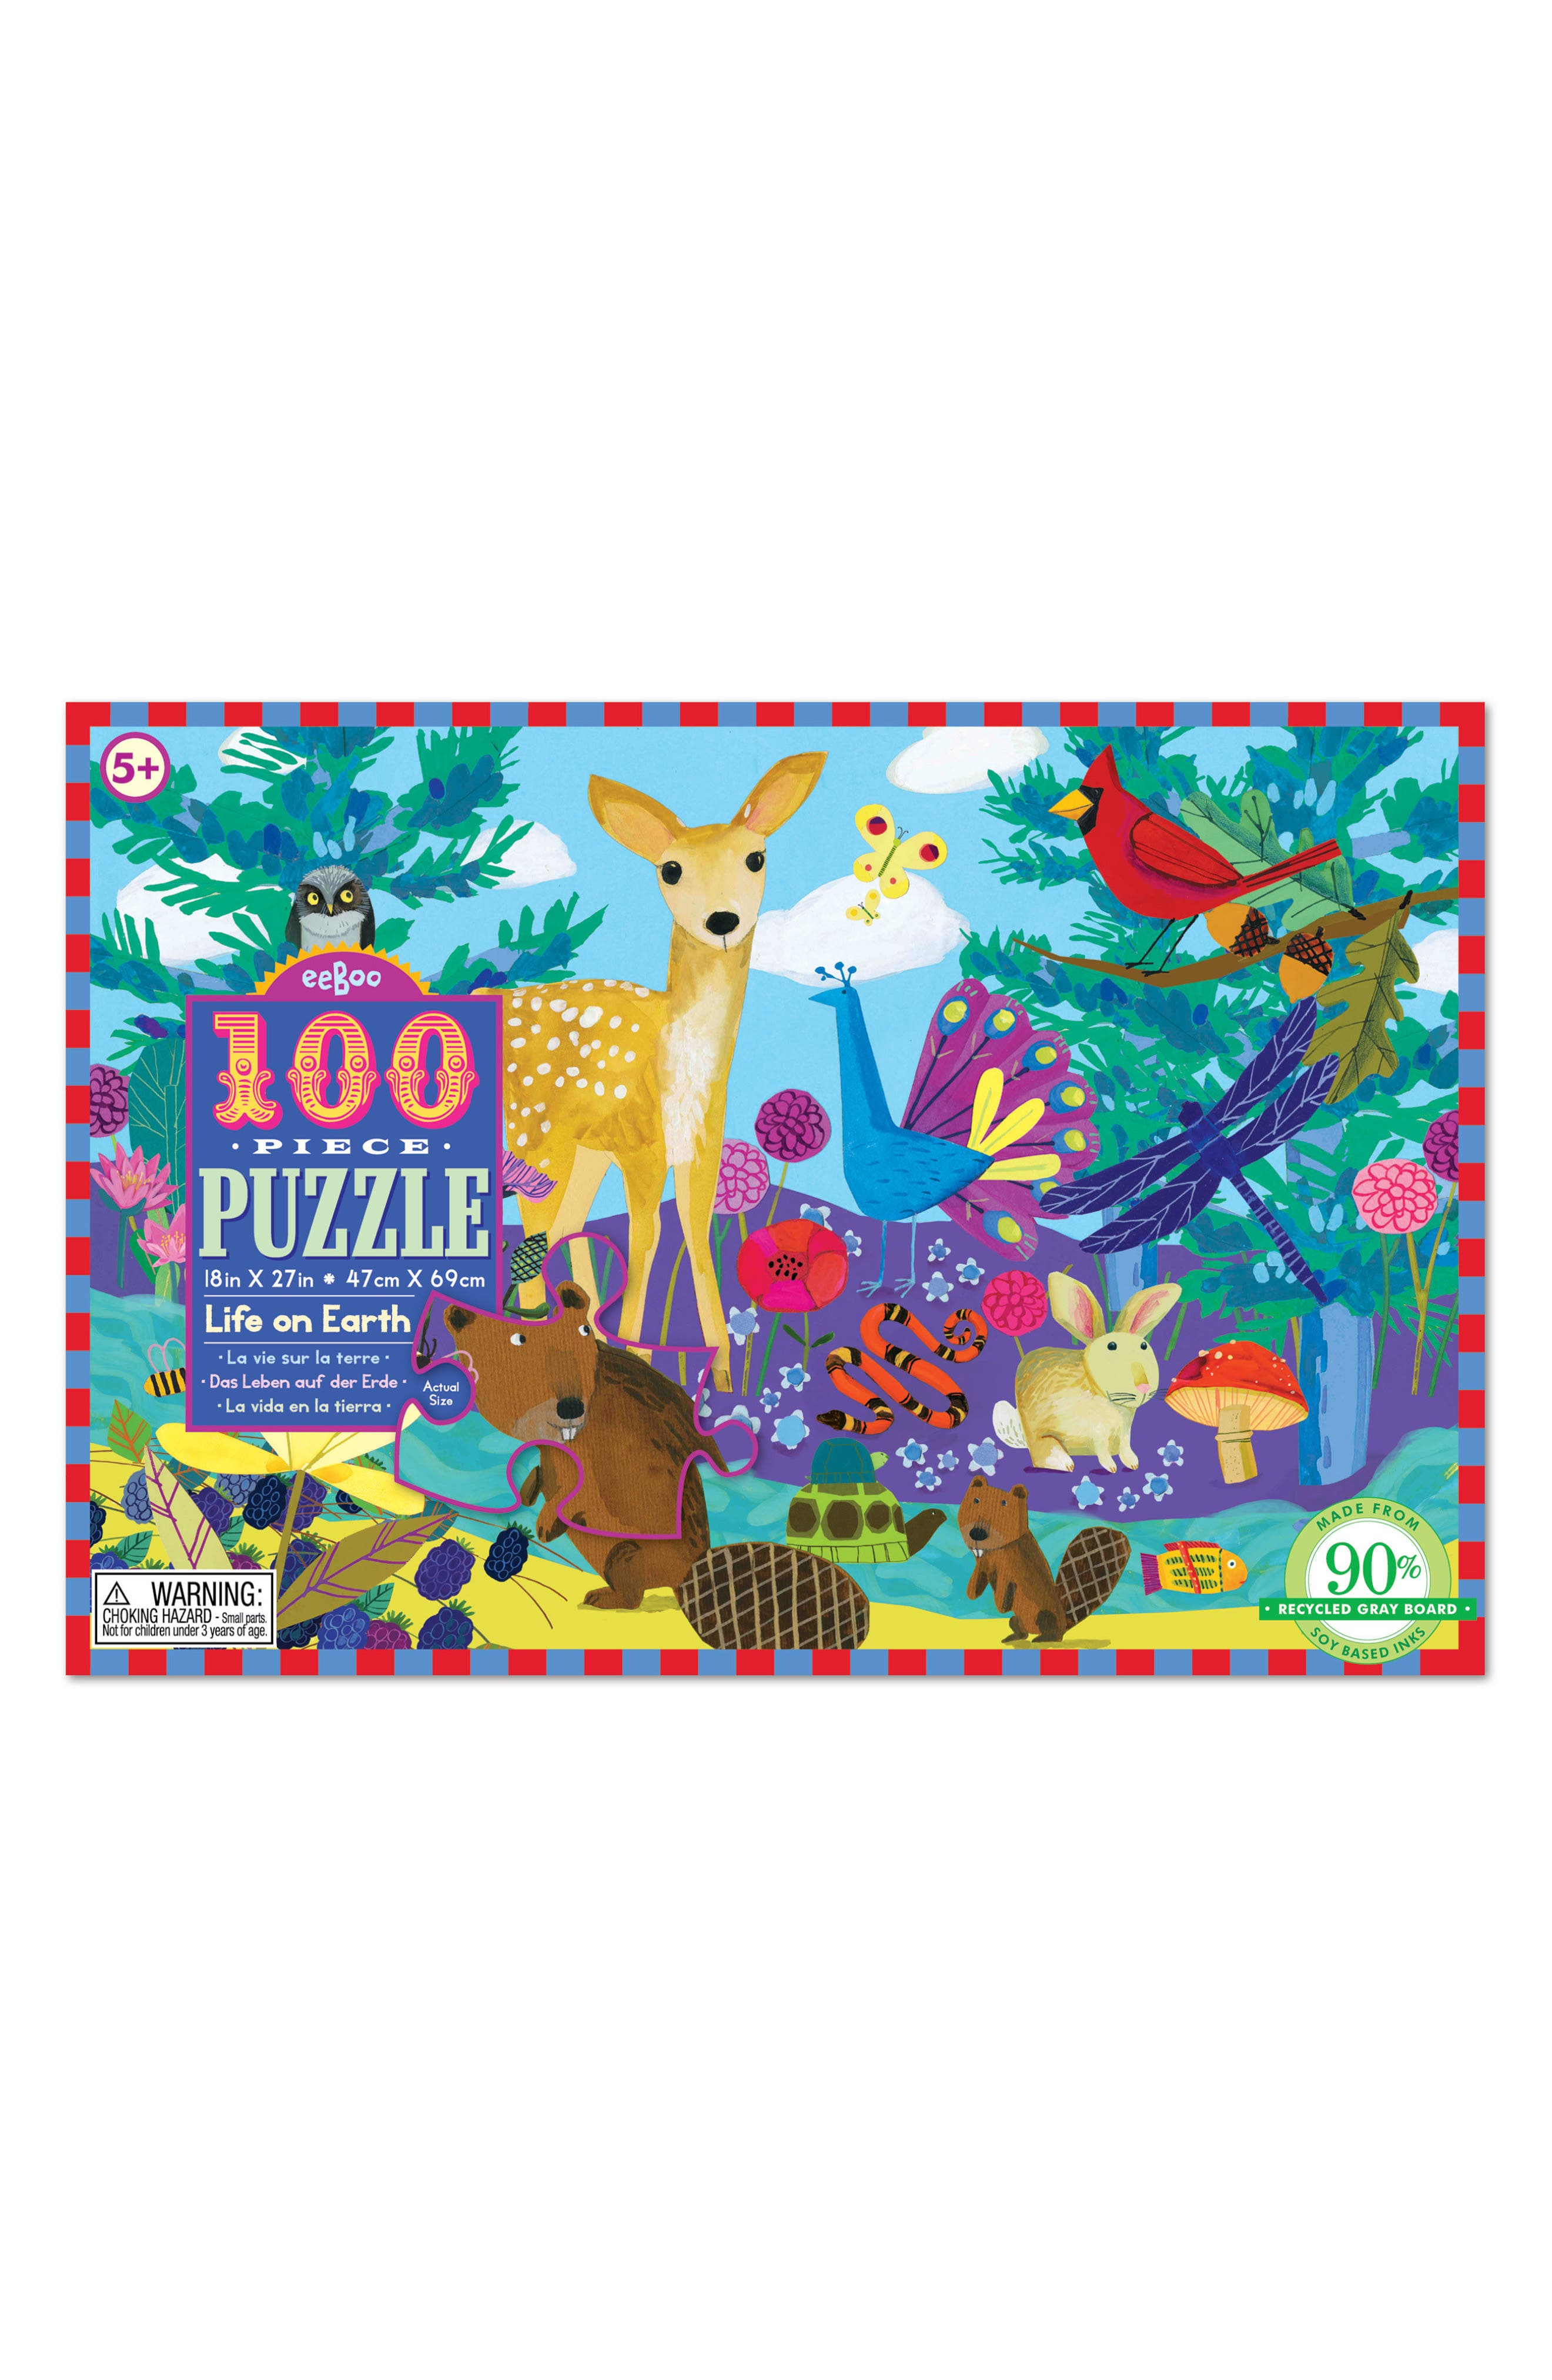 Alternate Image 1 Selected - eeBoo Life on Earth 100-Piece Puzzle